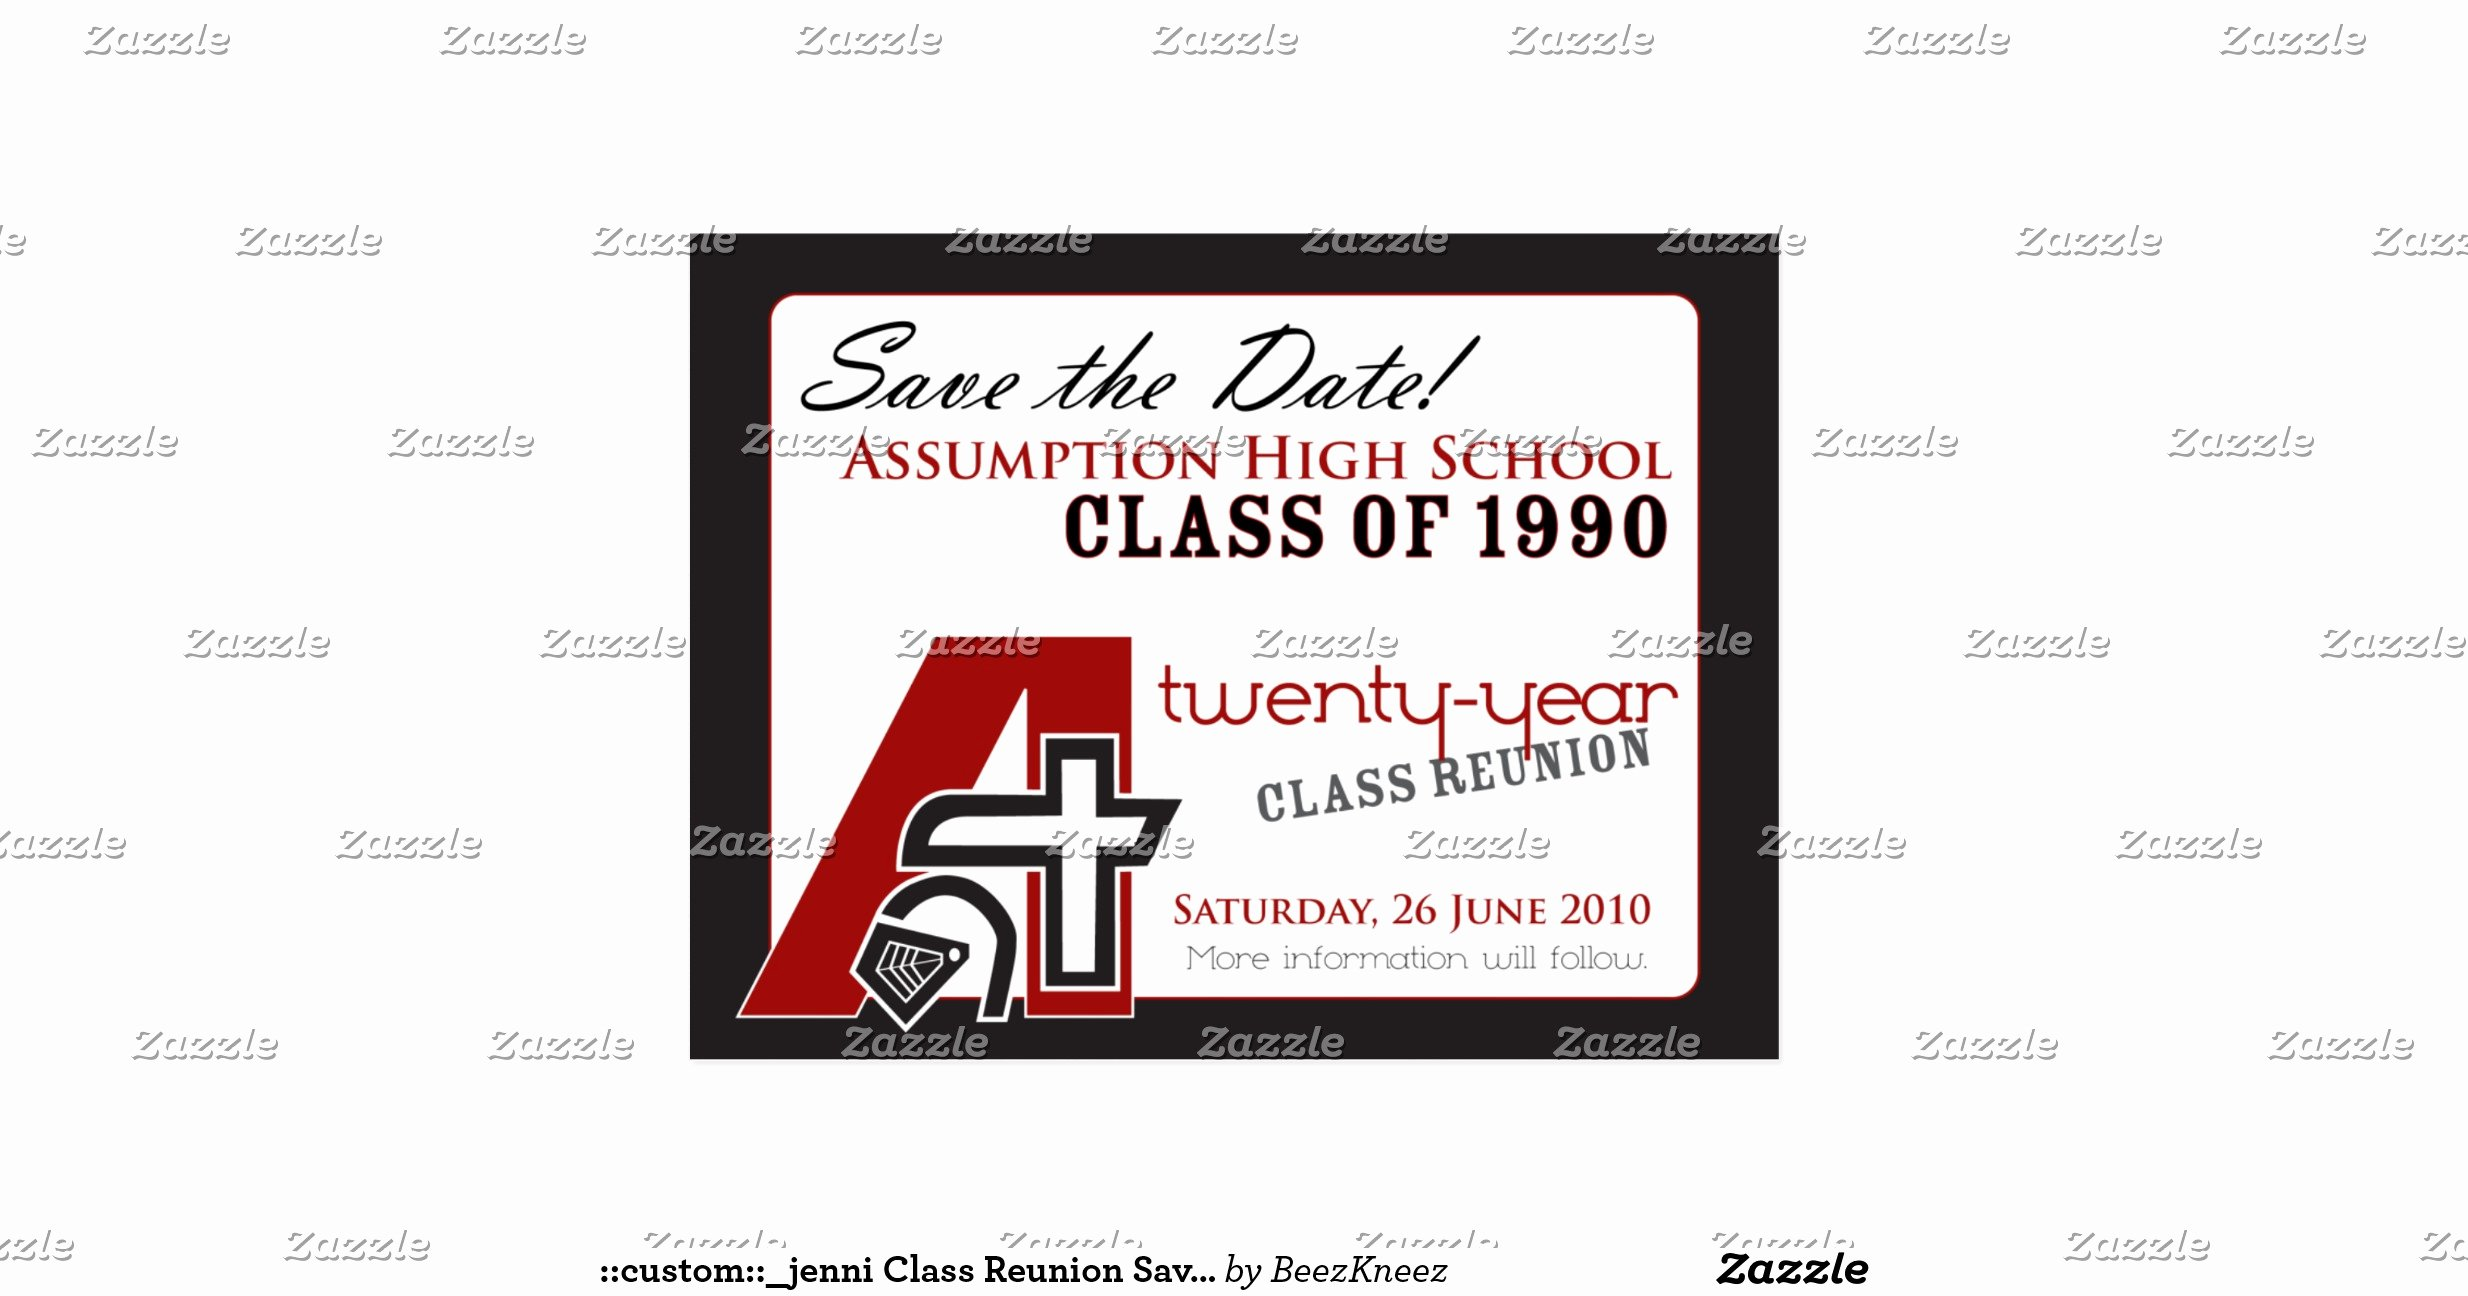 Save the Date Class Reunion Lovely Custom Jenni Class Reunion Save the Date V1 Postcard